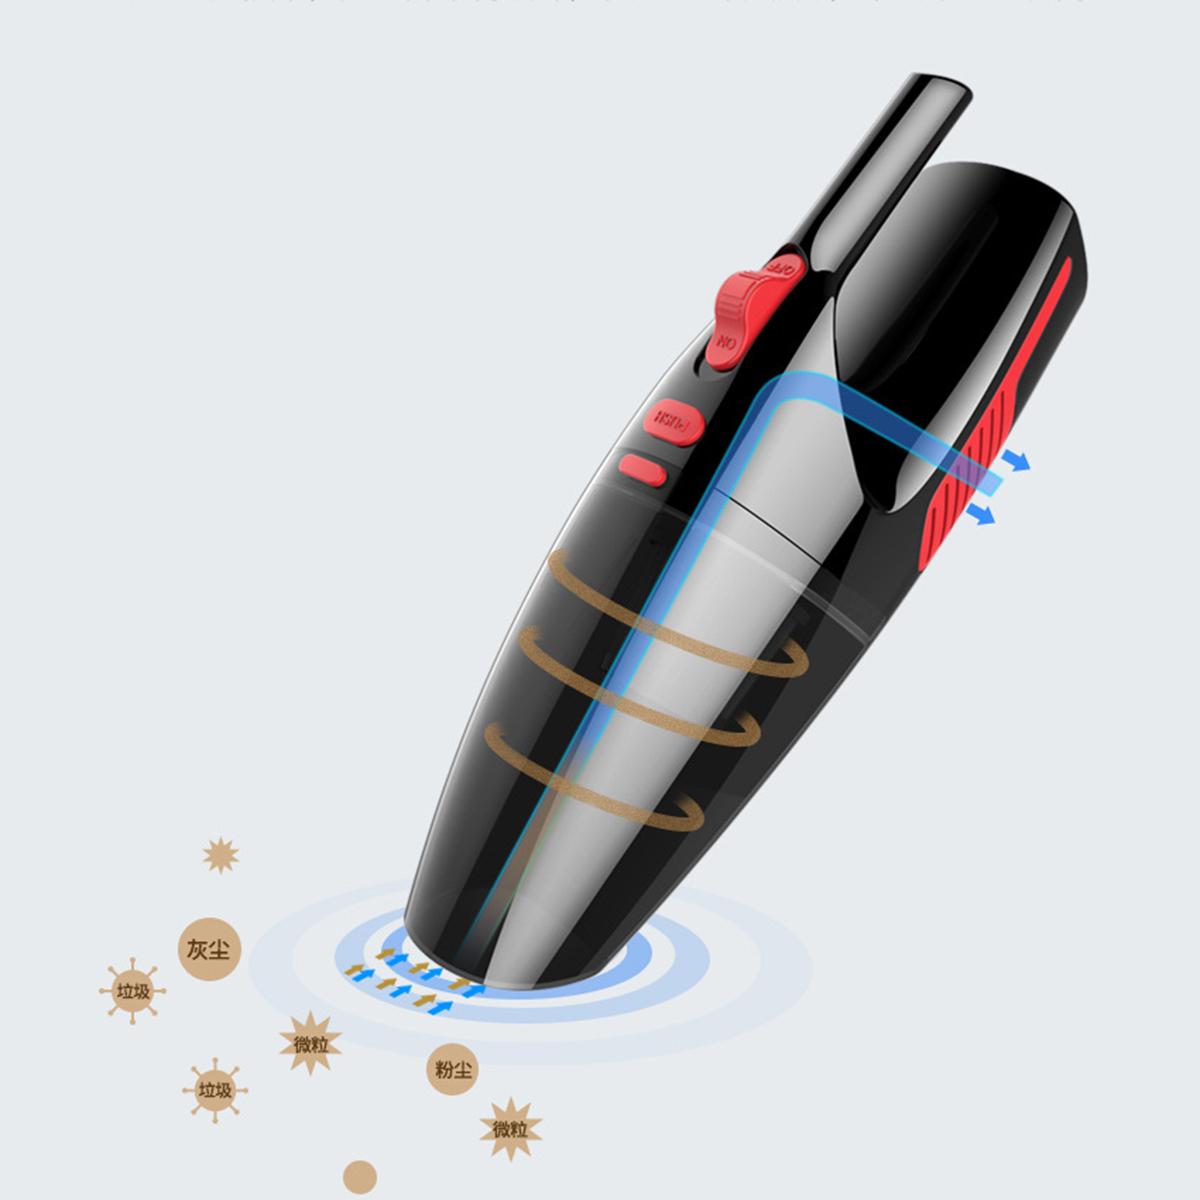 12V 120W Portable Handheld Car Auto Wet Dry Dirt Dust Duster Vacuum Cleaner